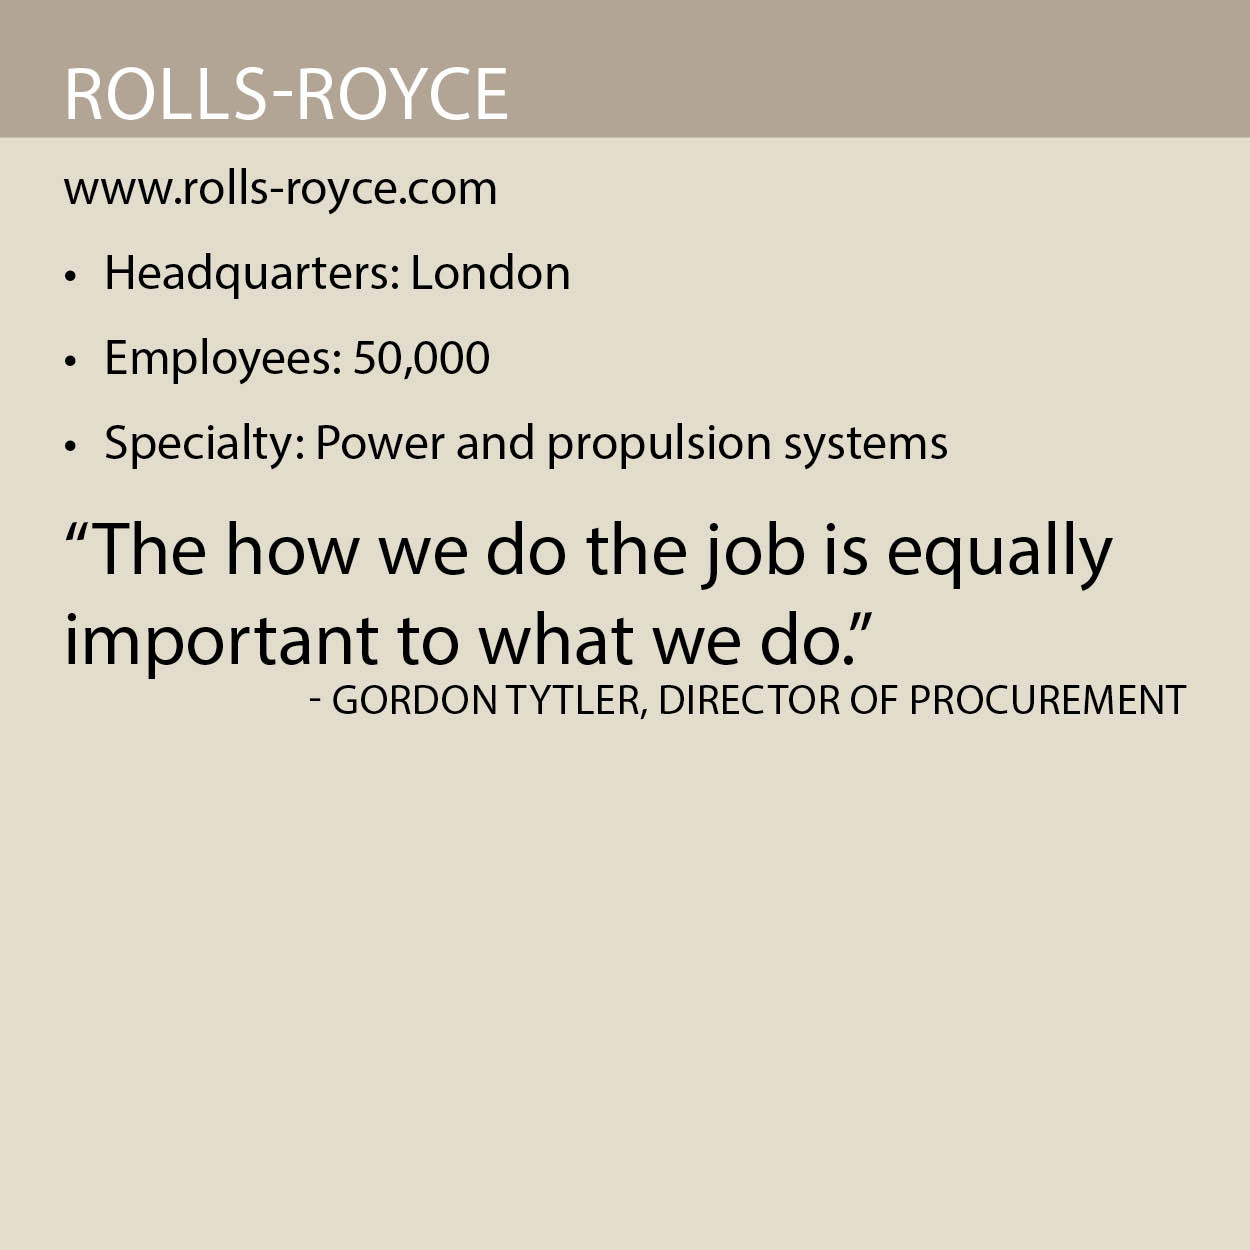 Rolls Royce fact box